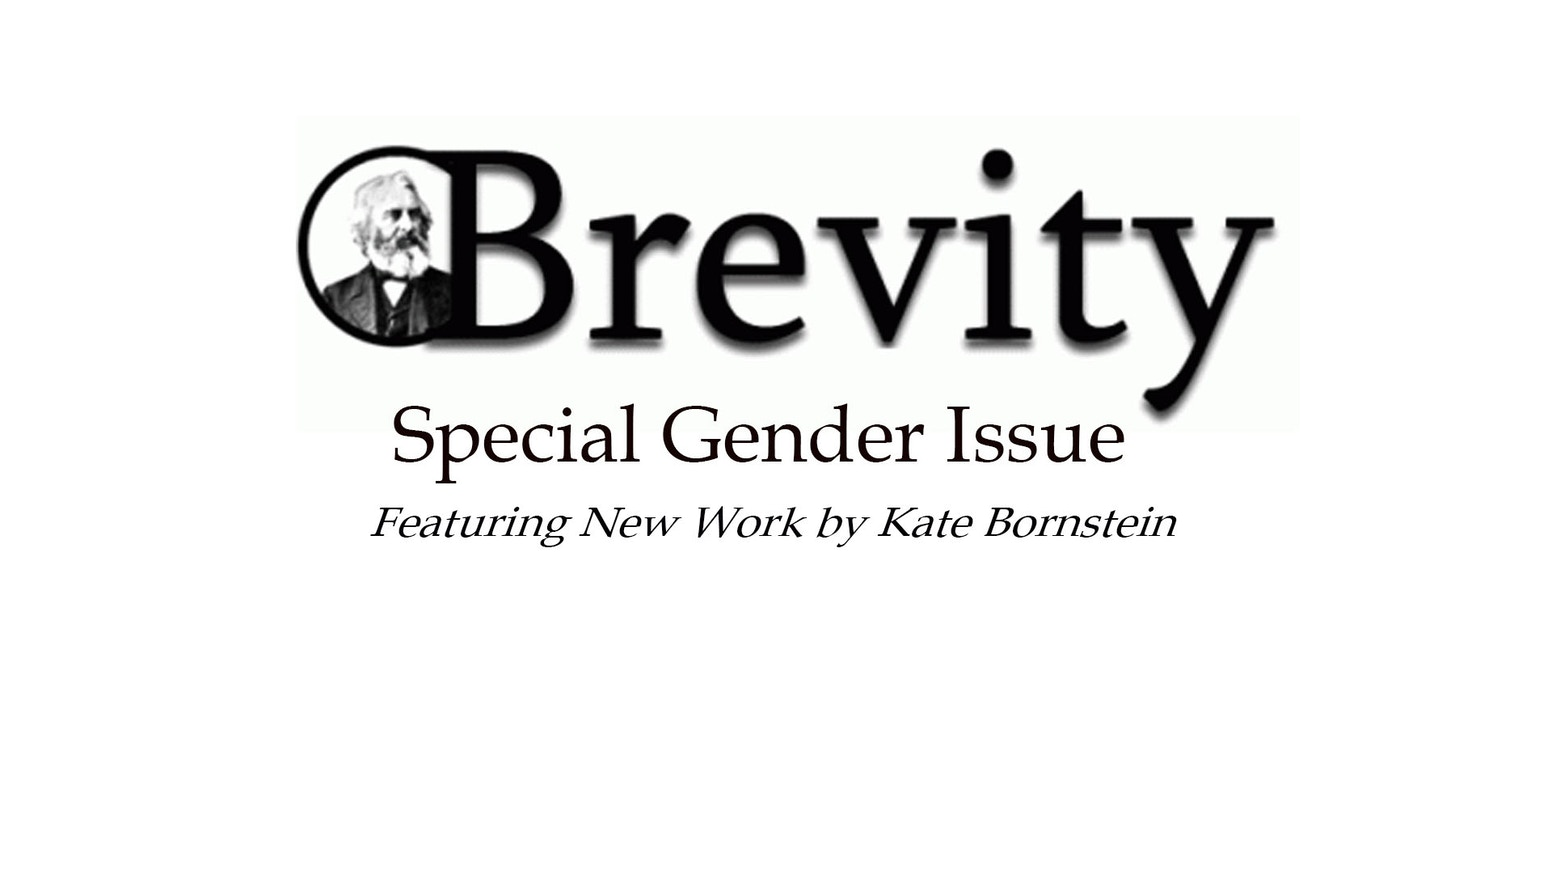 Science Essay Help Support Brevity Magazines Two Upcoming Special Issues On Gender And  Race Get Great Books And Essay Critiques In Return Compare Contrast Essay Papers also Science Fiction Essay Brevity Magazines Special Gender Issue By Brevity Magazine  Proposal Essay Topics Ideas